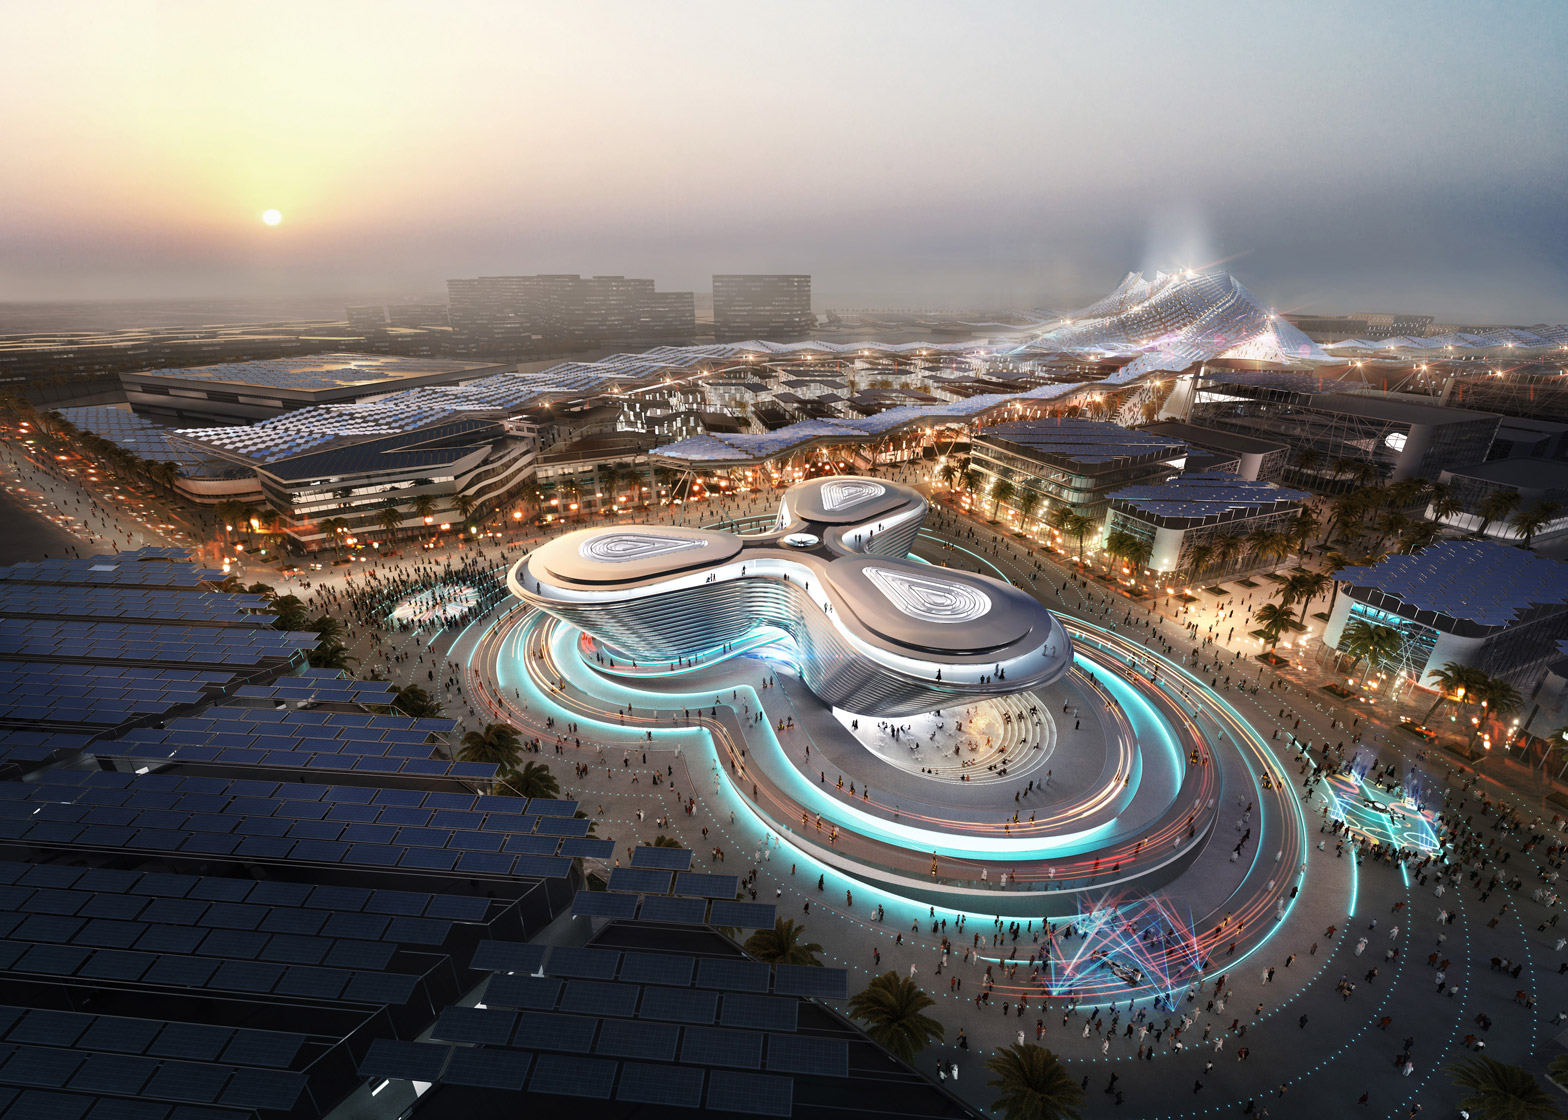 Foster+Partner's Mobility Pavilion from the Dubai Expo 2020